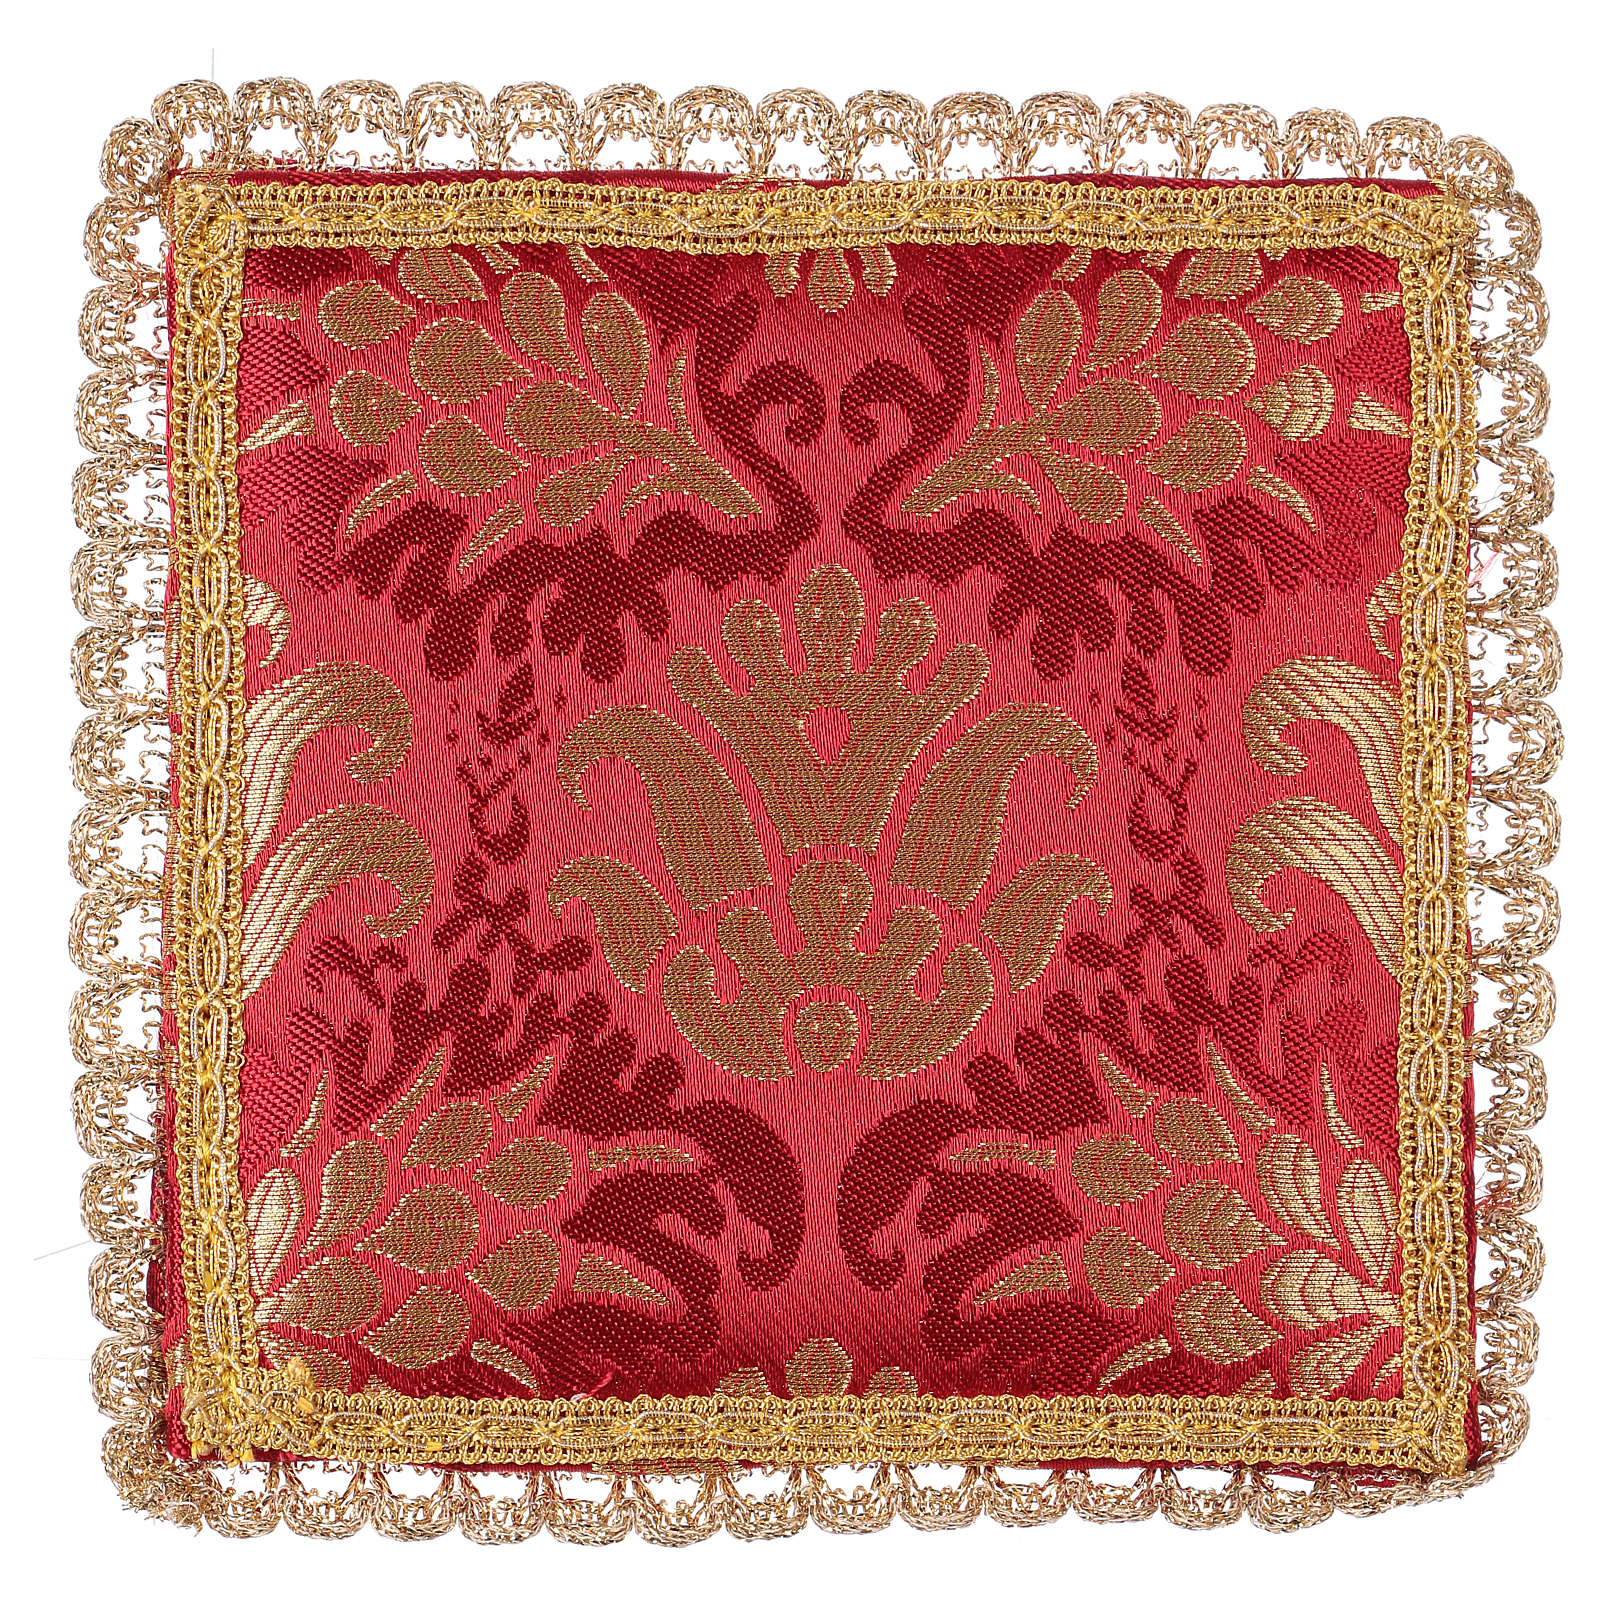 Chalice veil (pall) with wheat embroidery on red brocade 4